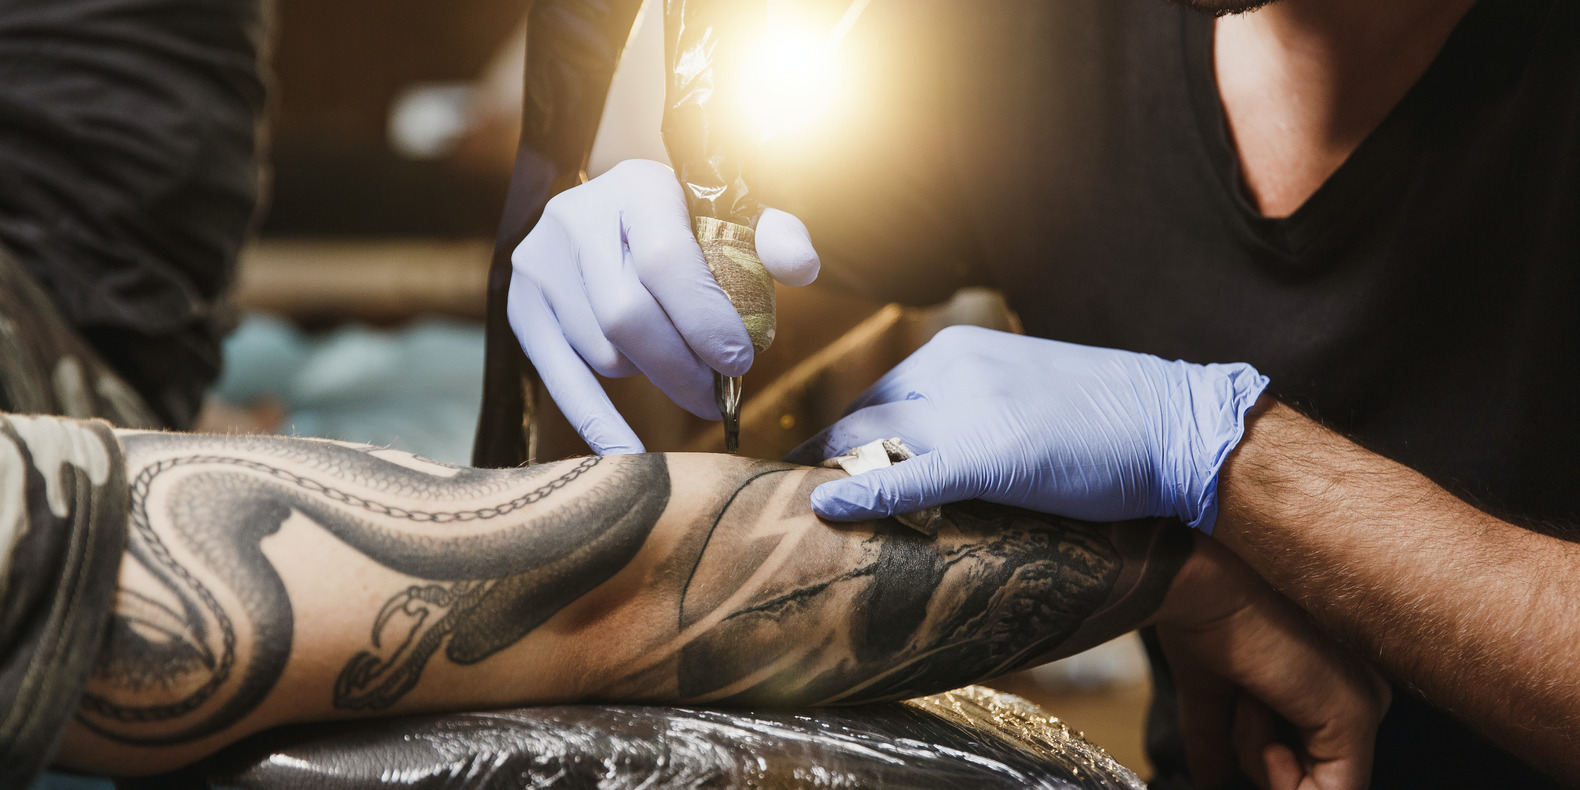 Tattooing and 3D Printing: Is There A Connection?